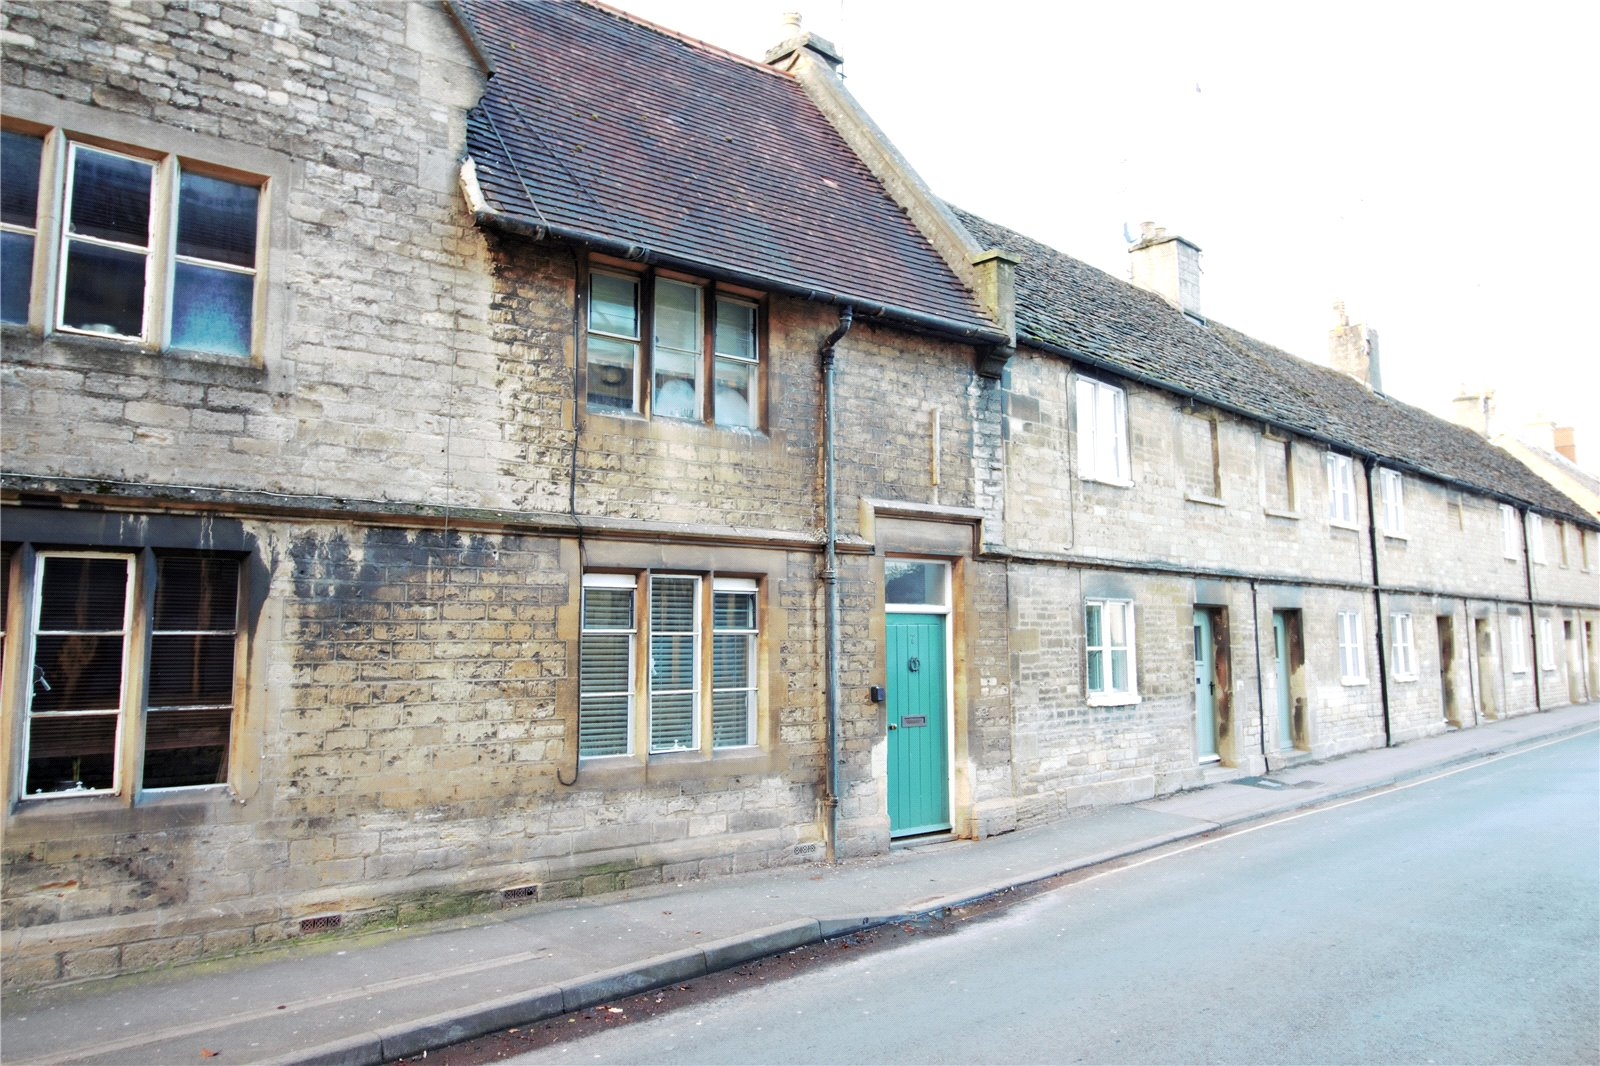 3 Bedrooms Property for sale in Lewis Lane Cirencester GL7